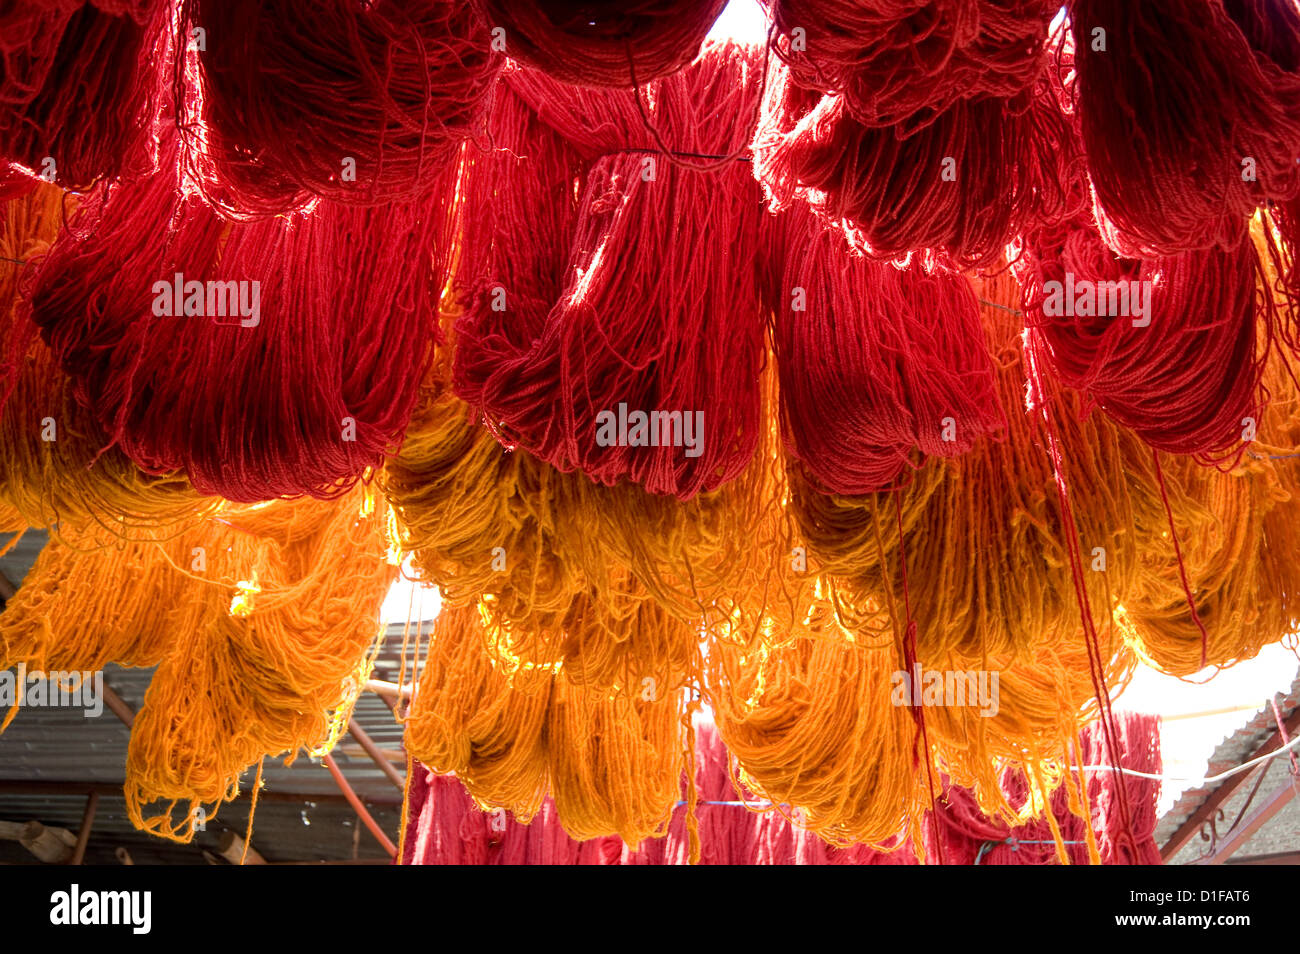 Brightly coloured wool hanging to dry in the dyers souk, Marrakech, Morocco, North Africa, Africa - Stock Image